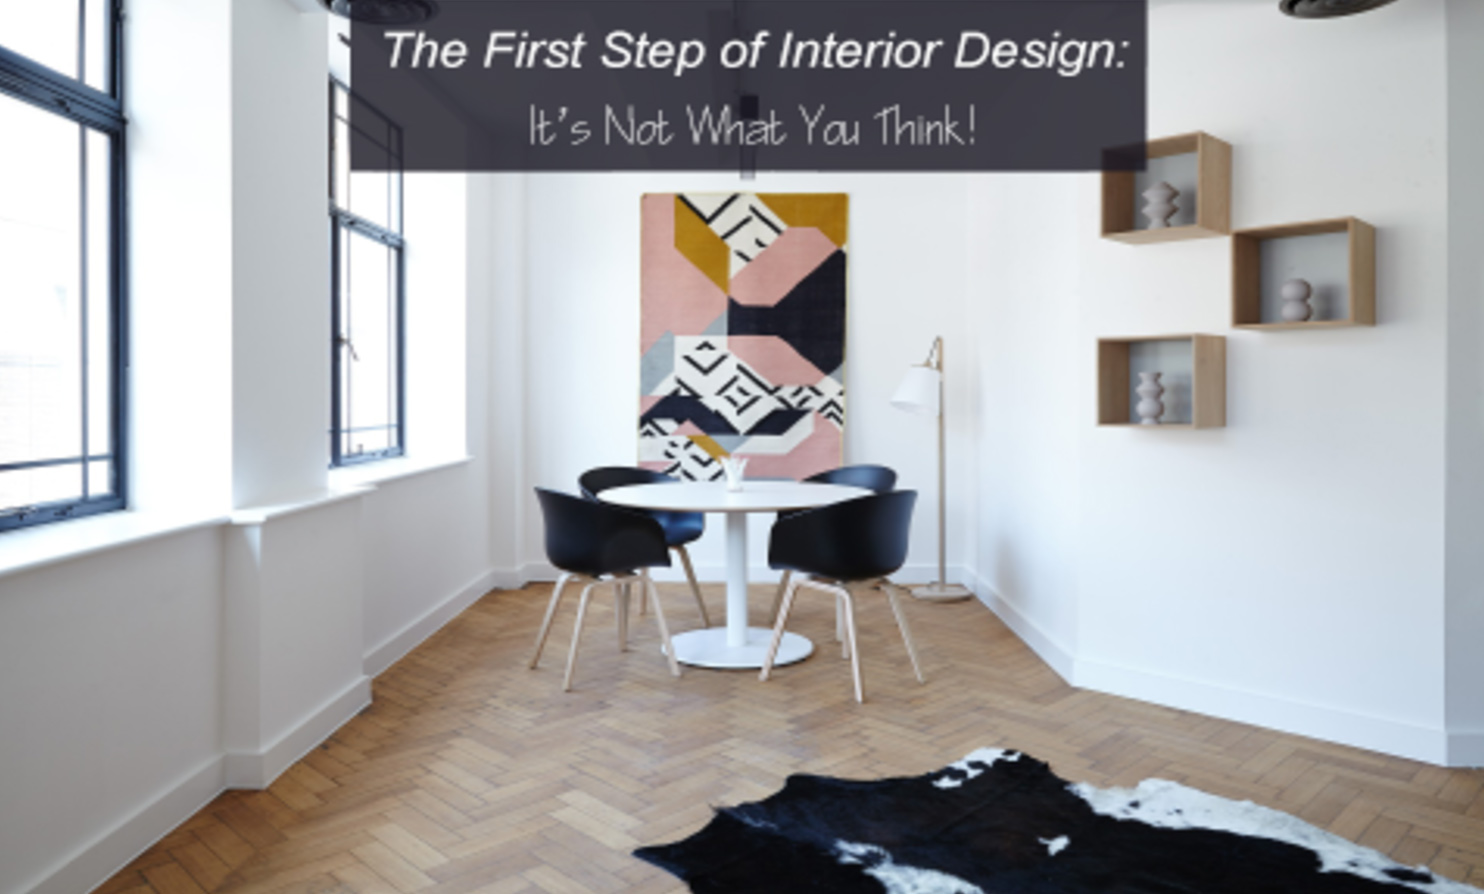 The First Step Of Interior Design